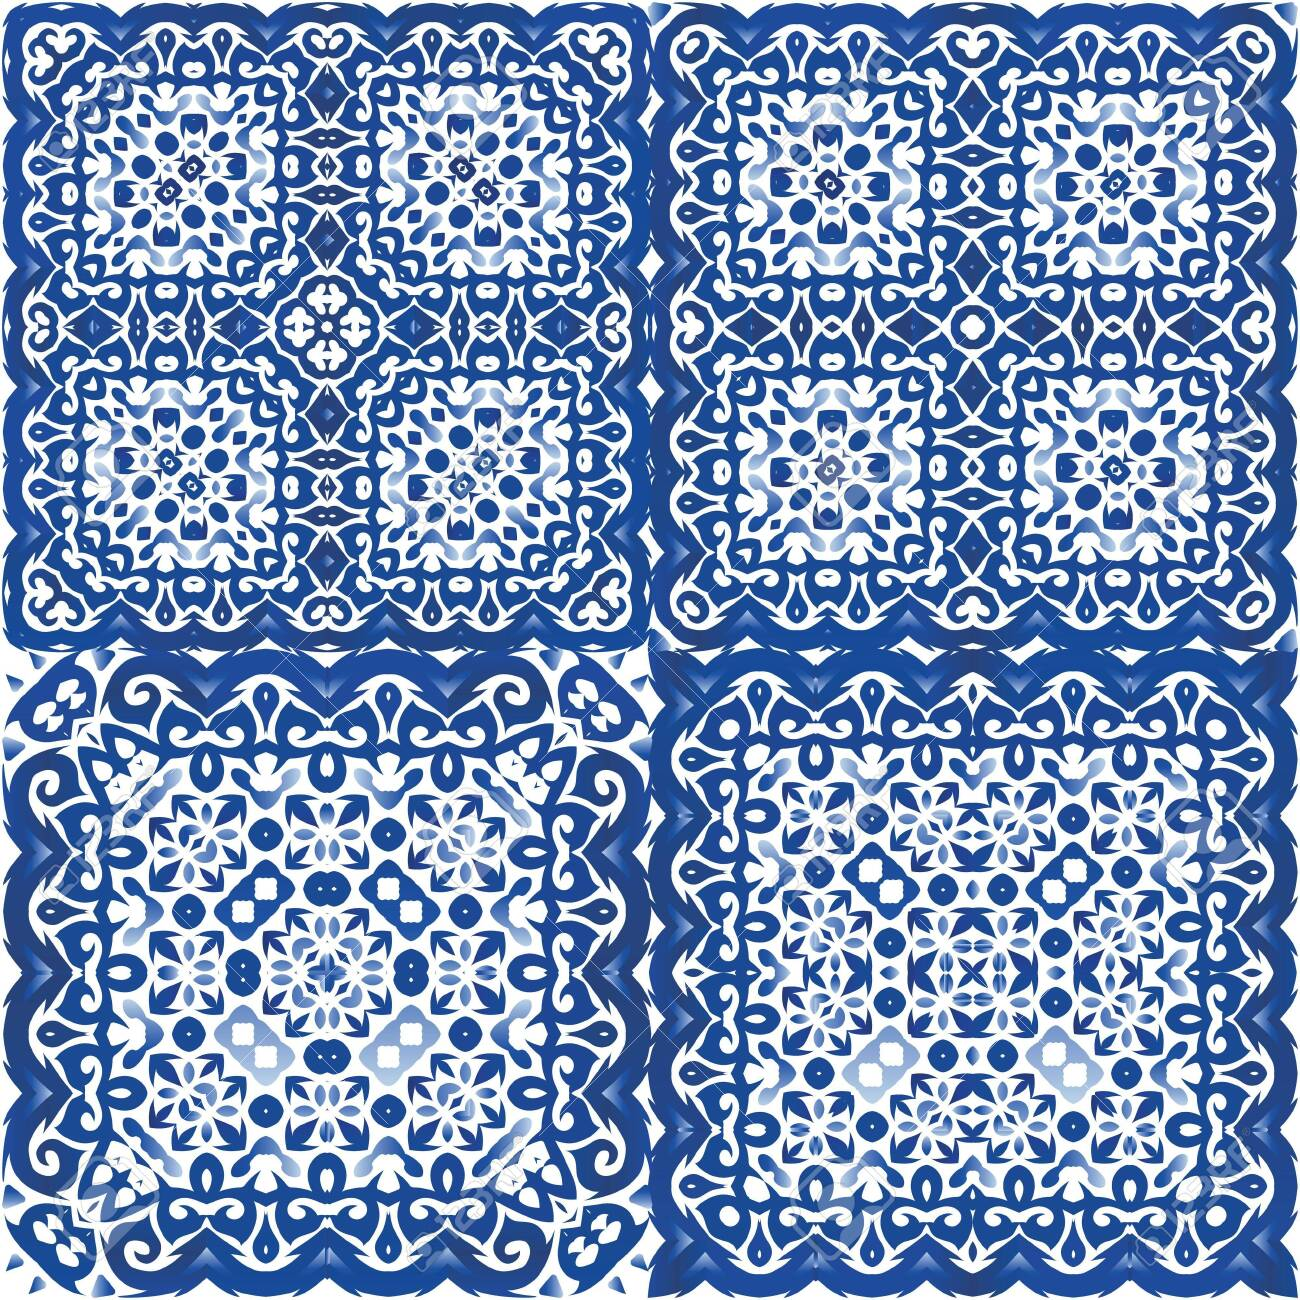 Ceramic tiles azulejo portugal. Set of vector seamless patterns. Colored design. Blue ethnic backgrounds for T-shirts, scrapbooking, linens, smartphone cases or bags. - 140760721